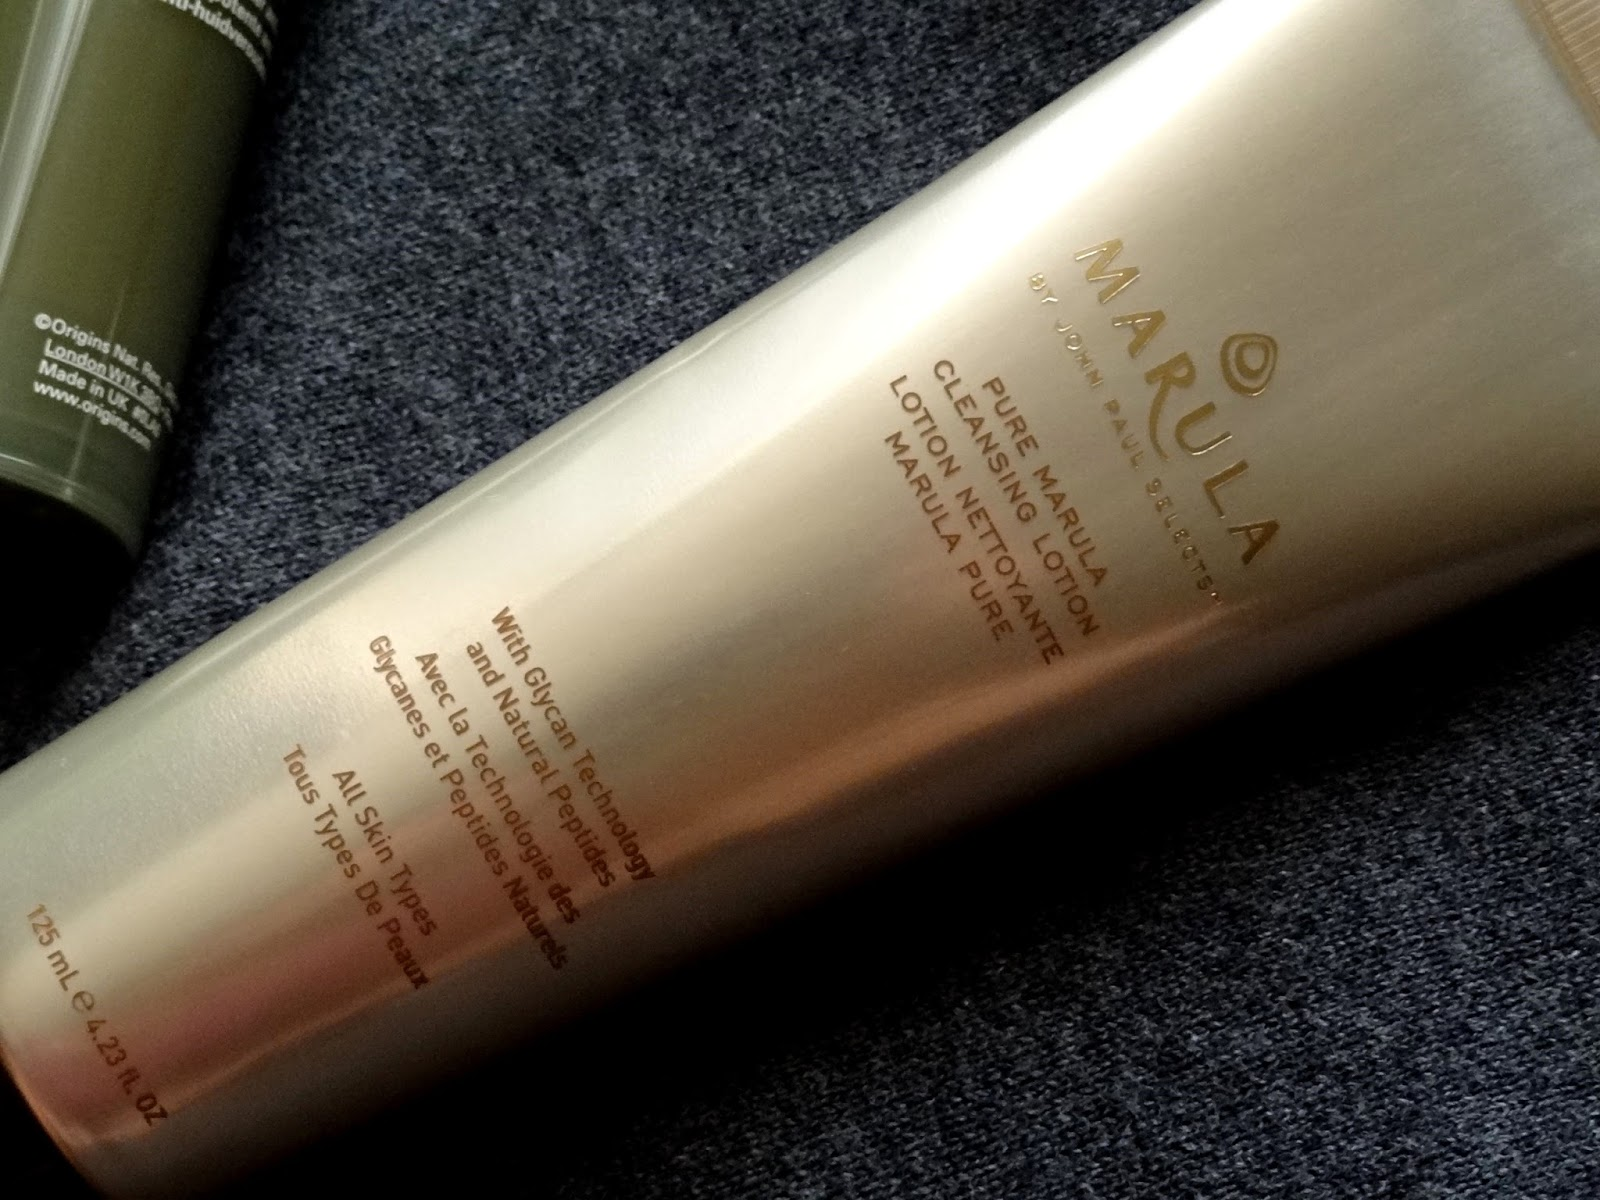 Marula by John Paul Selects Pure Marula Cleansing Lotion Review, Photos